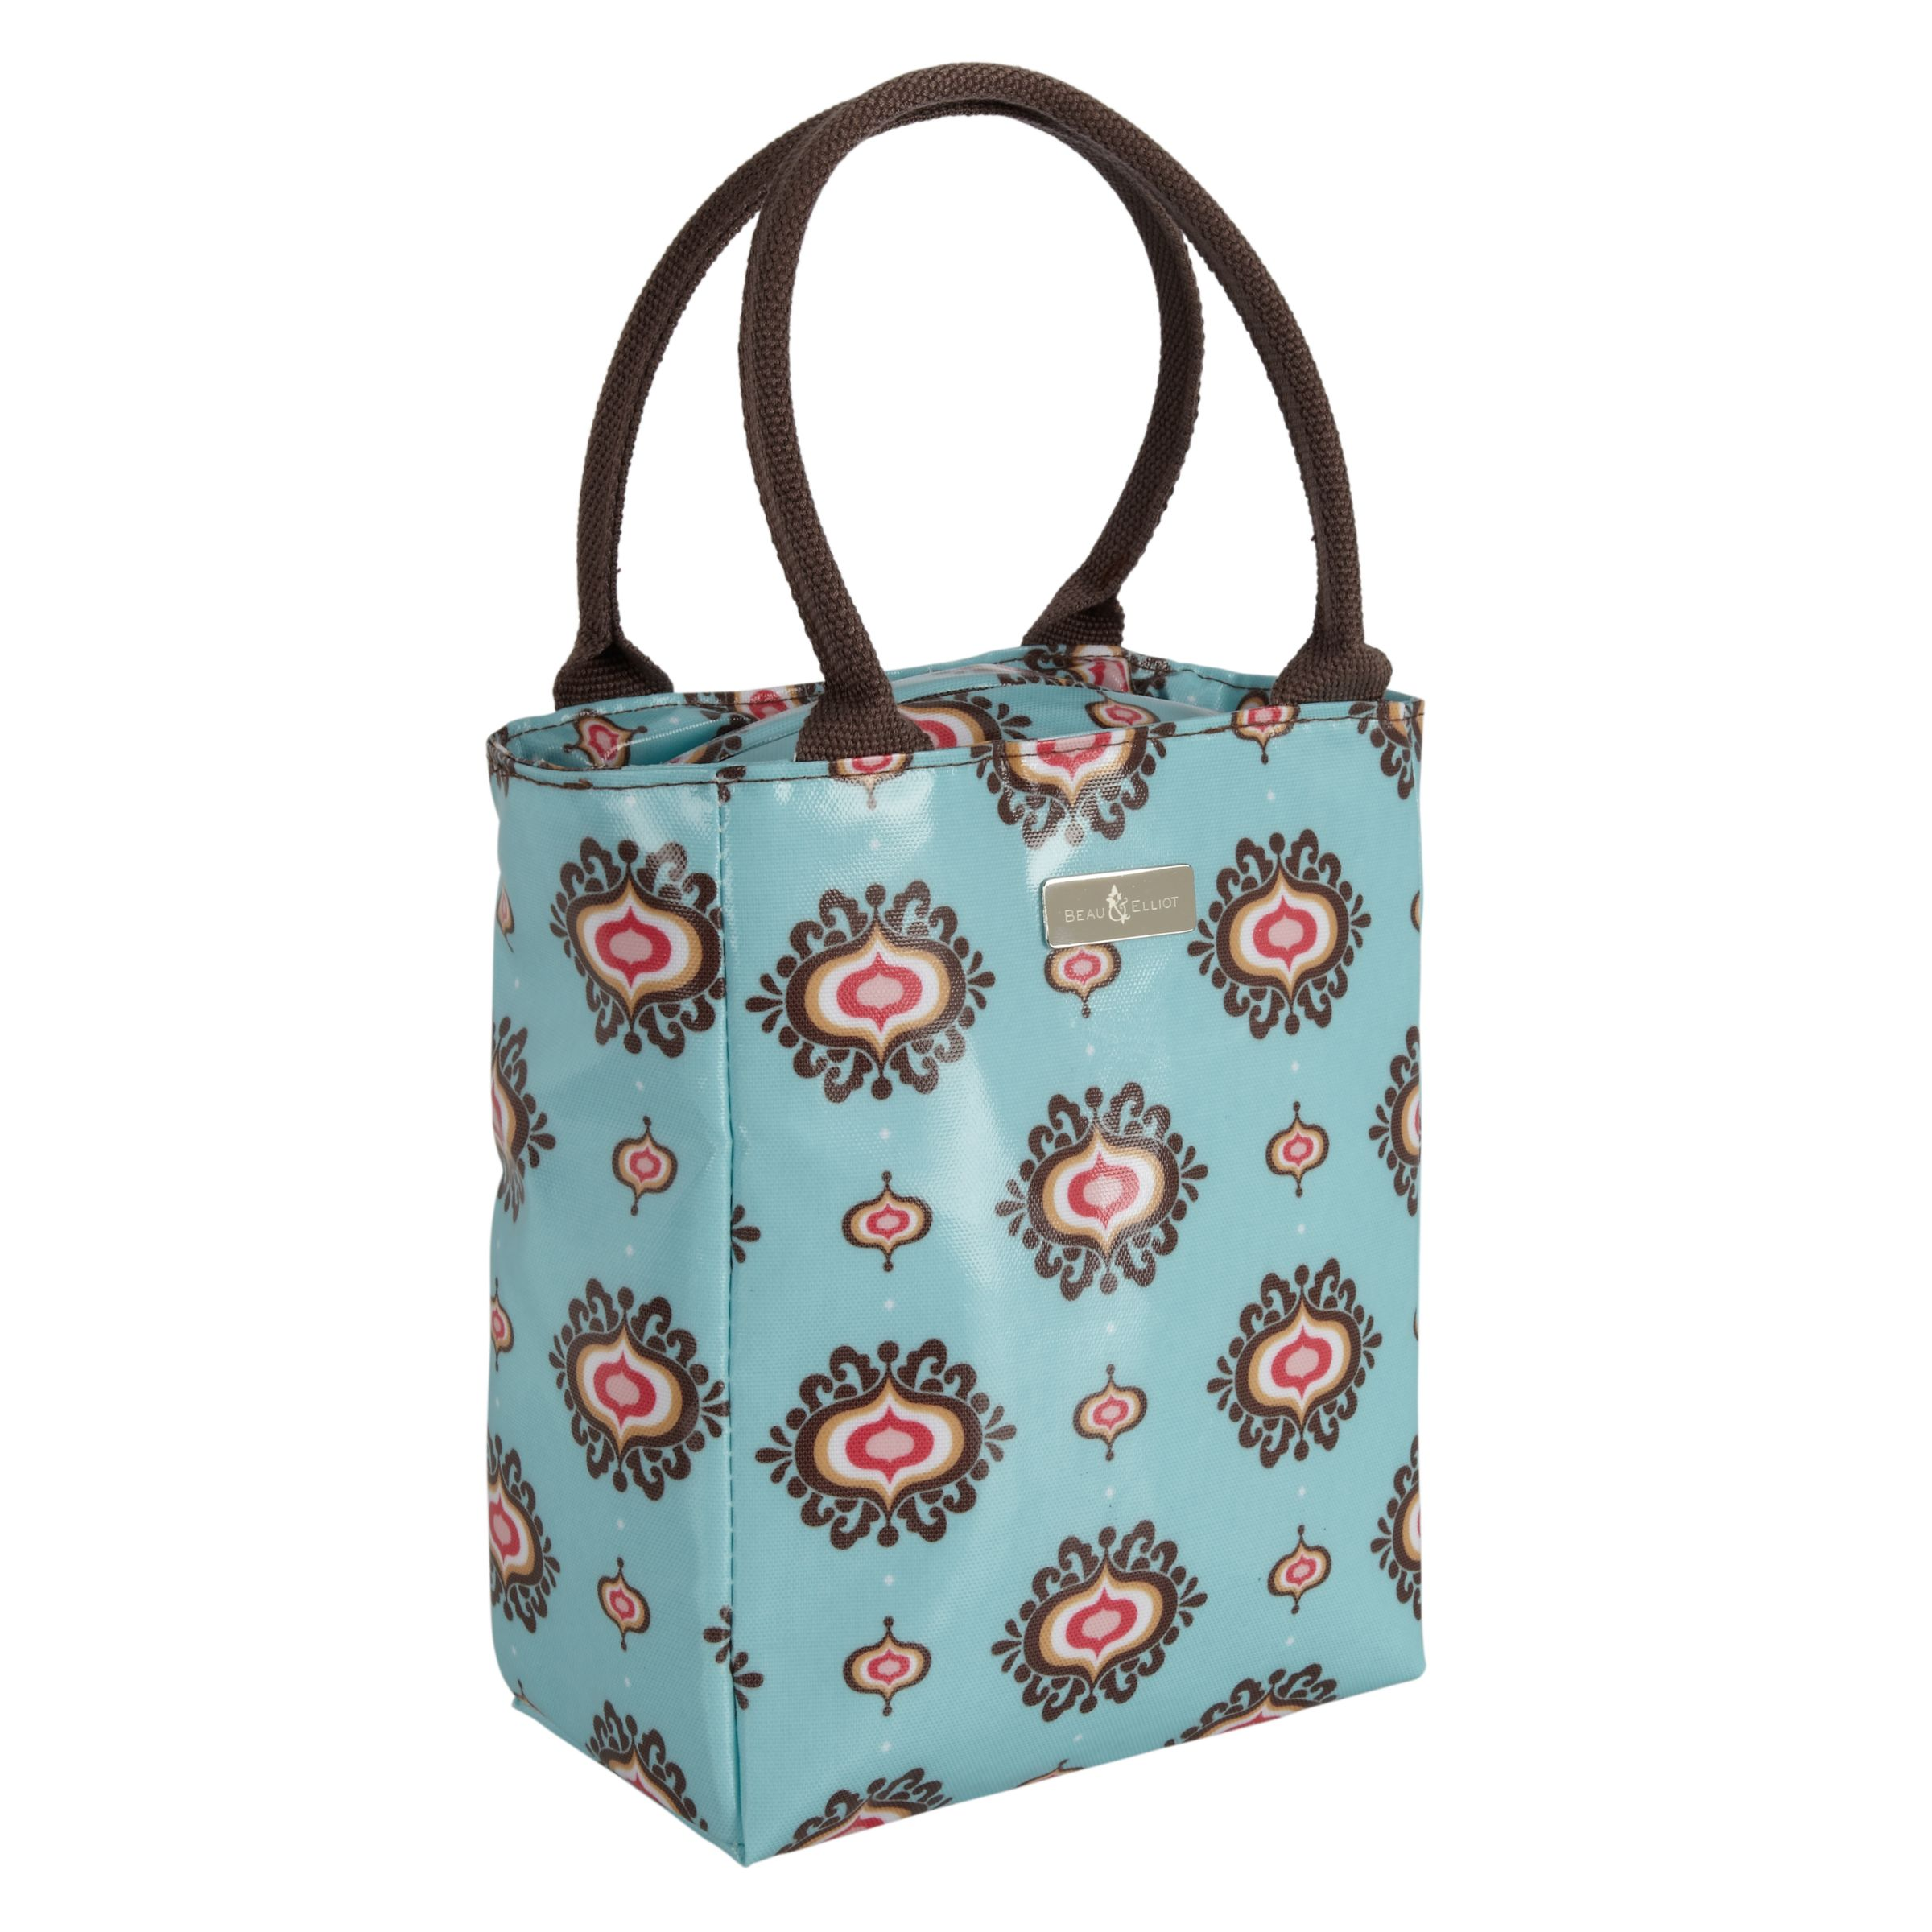 Beau & Elliot Filigree Lunch Bag